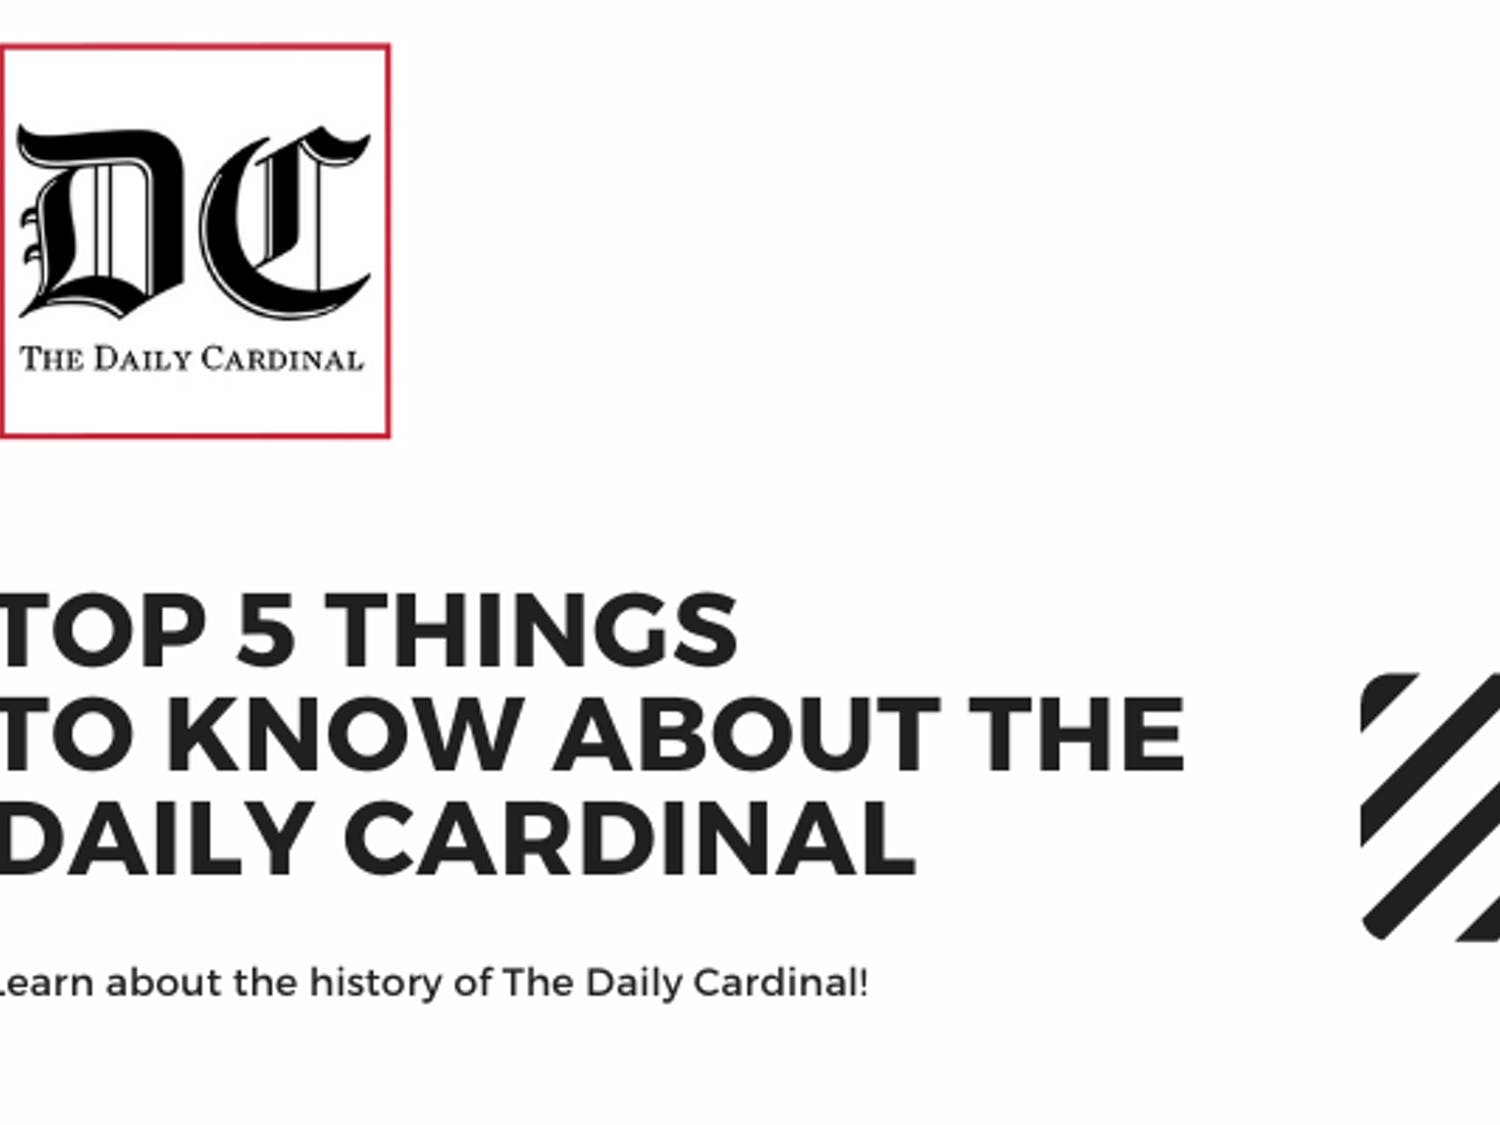 Top 5 Things To Know About The Daily Cardinal Header